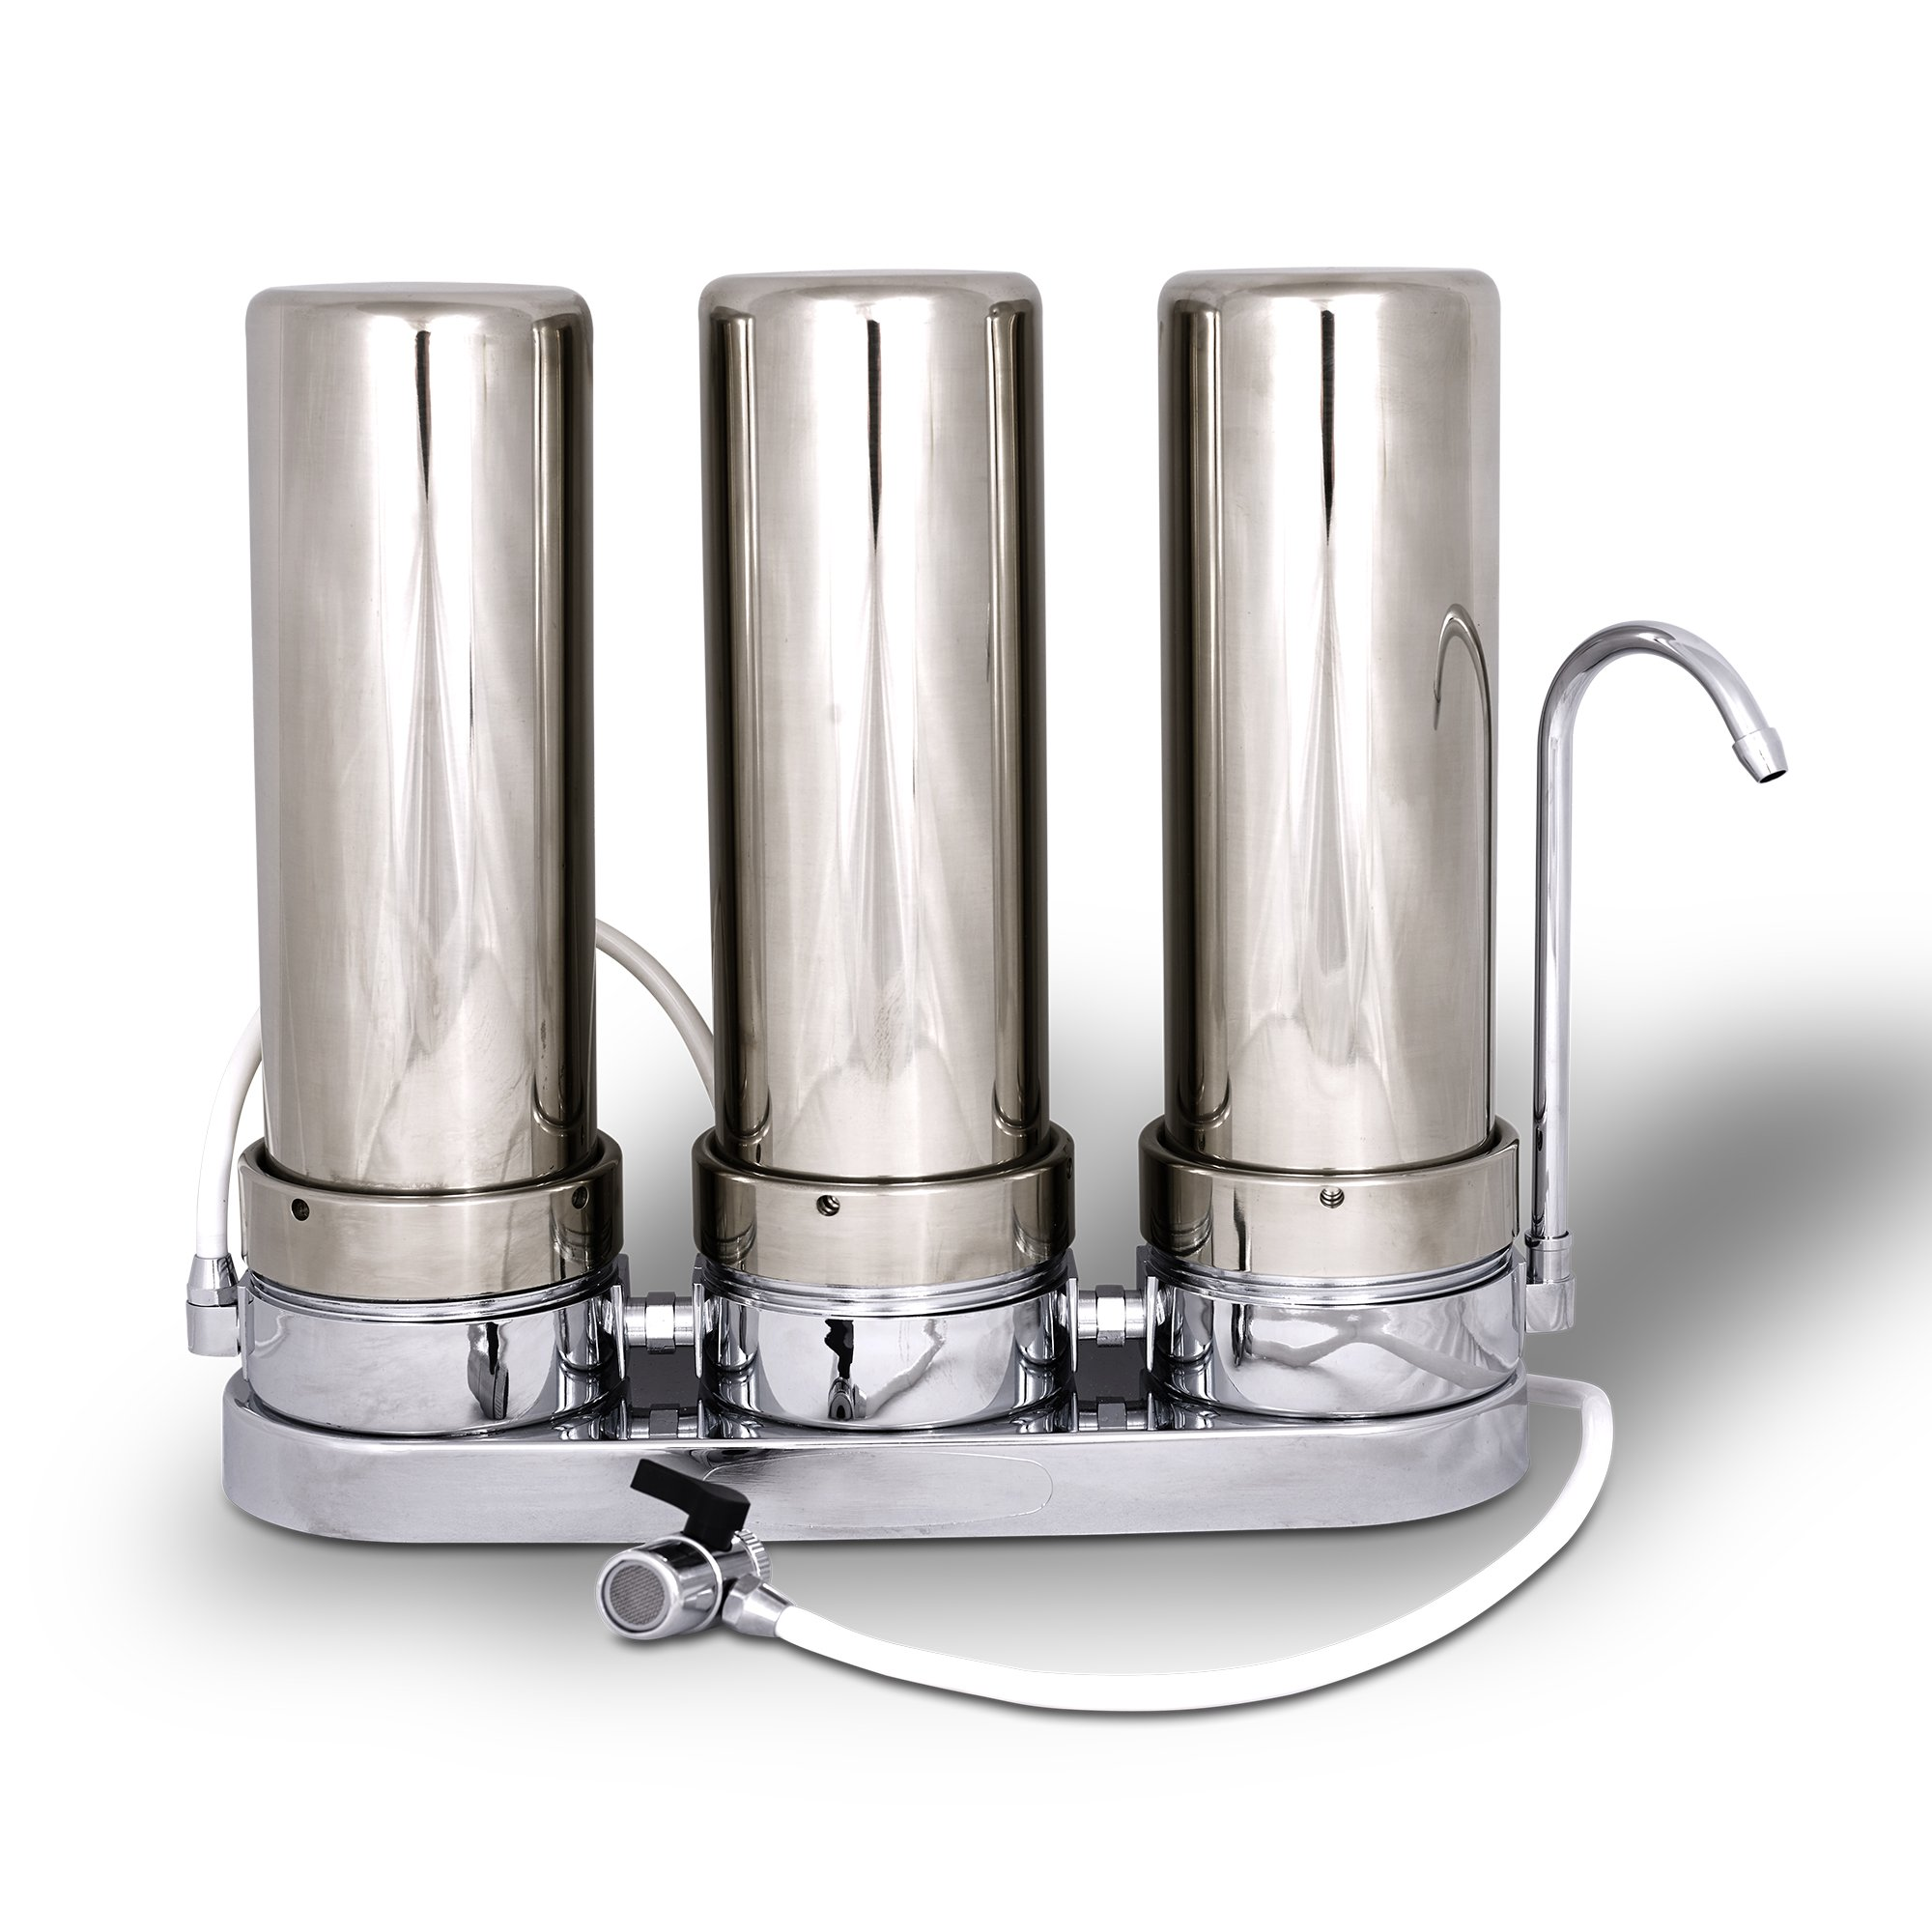 Three Stages Stainless Steel Countertop Water Filtration Unit: Carbon Block, GAC & Sediment